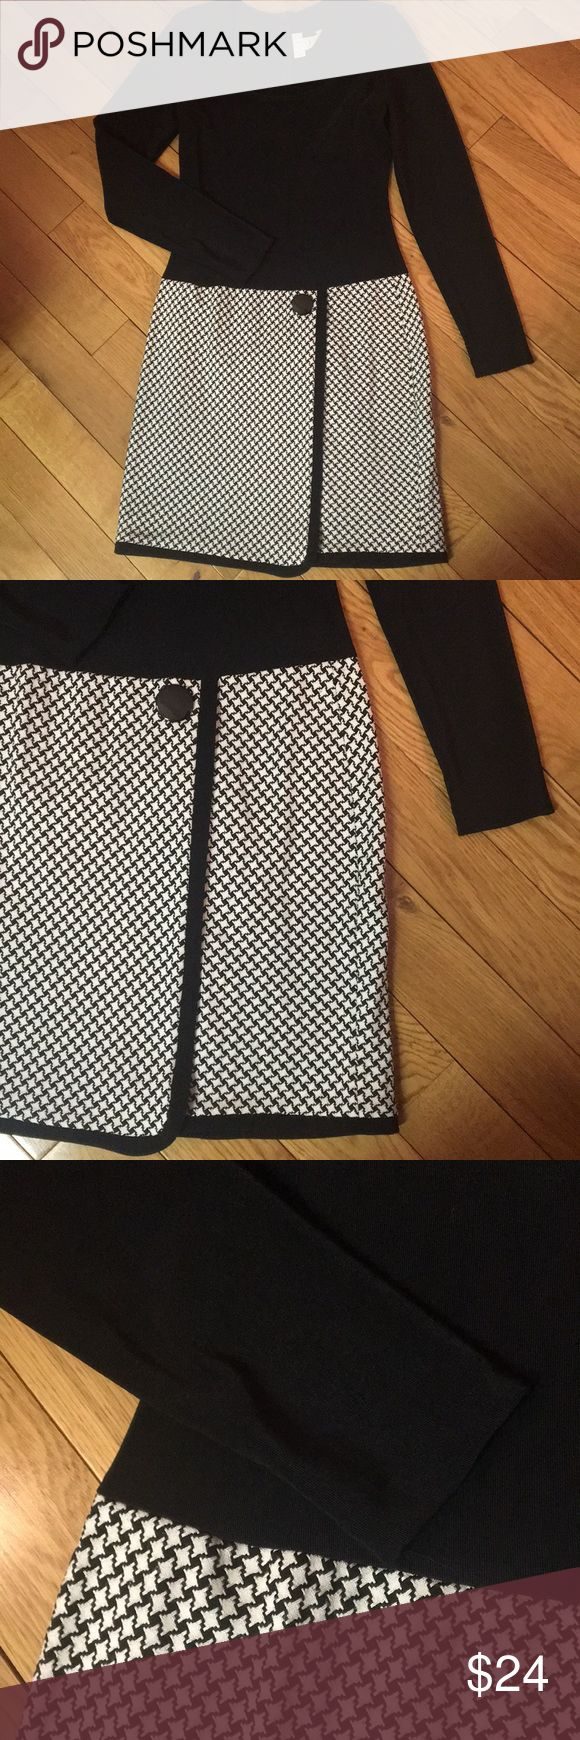 """Expo black and white dress Really cute dress! Women's size 8. Runs small. Pit to pit is 16"""". Waist is 14"""". Fullest part of hip is 19"""". Length from top of shoulder to hem is 36"""". Solid black top with checkered skirt bottom. Bottom overlaps. Top has stretch. Zips up the back. expo Dresses Long Sleeve"""